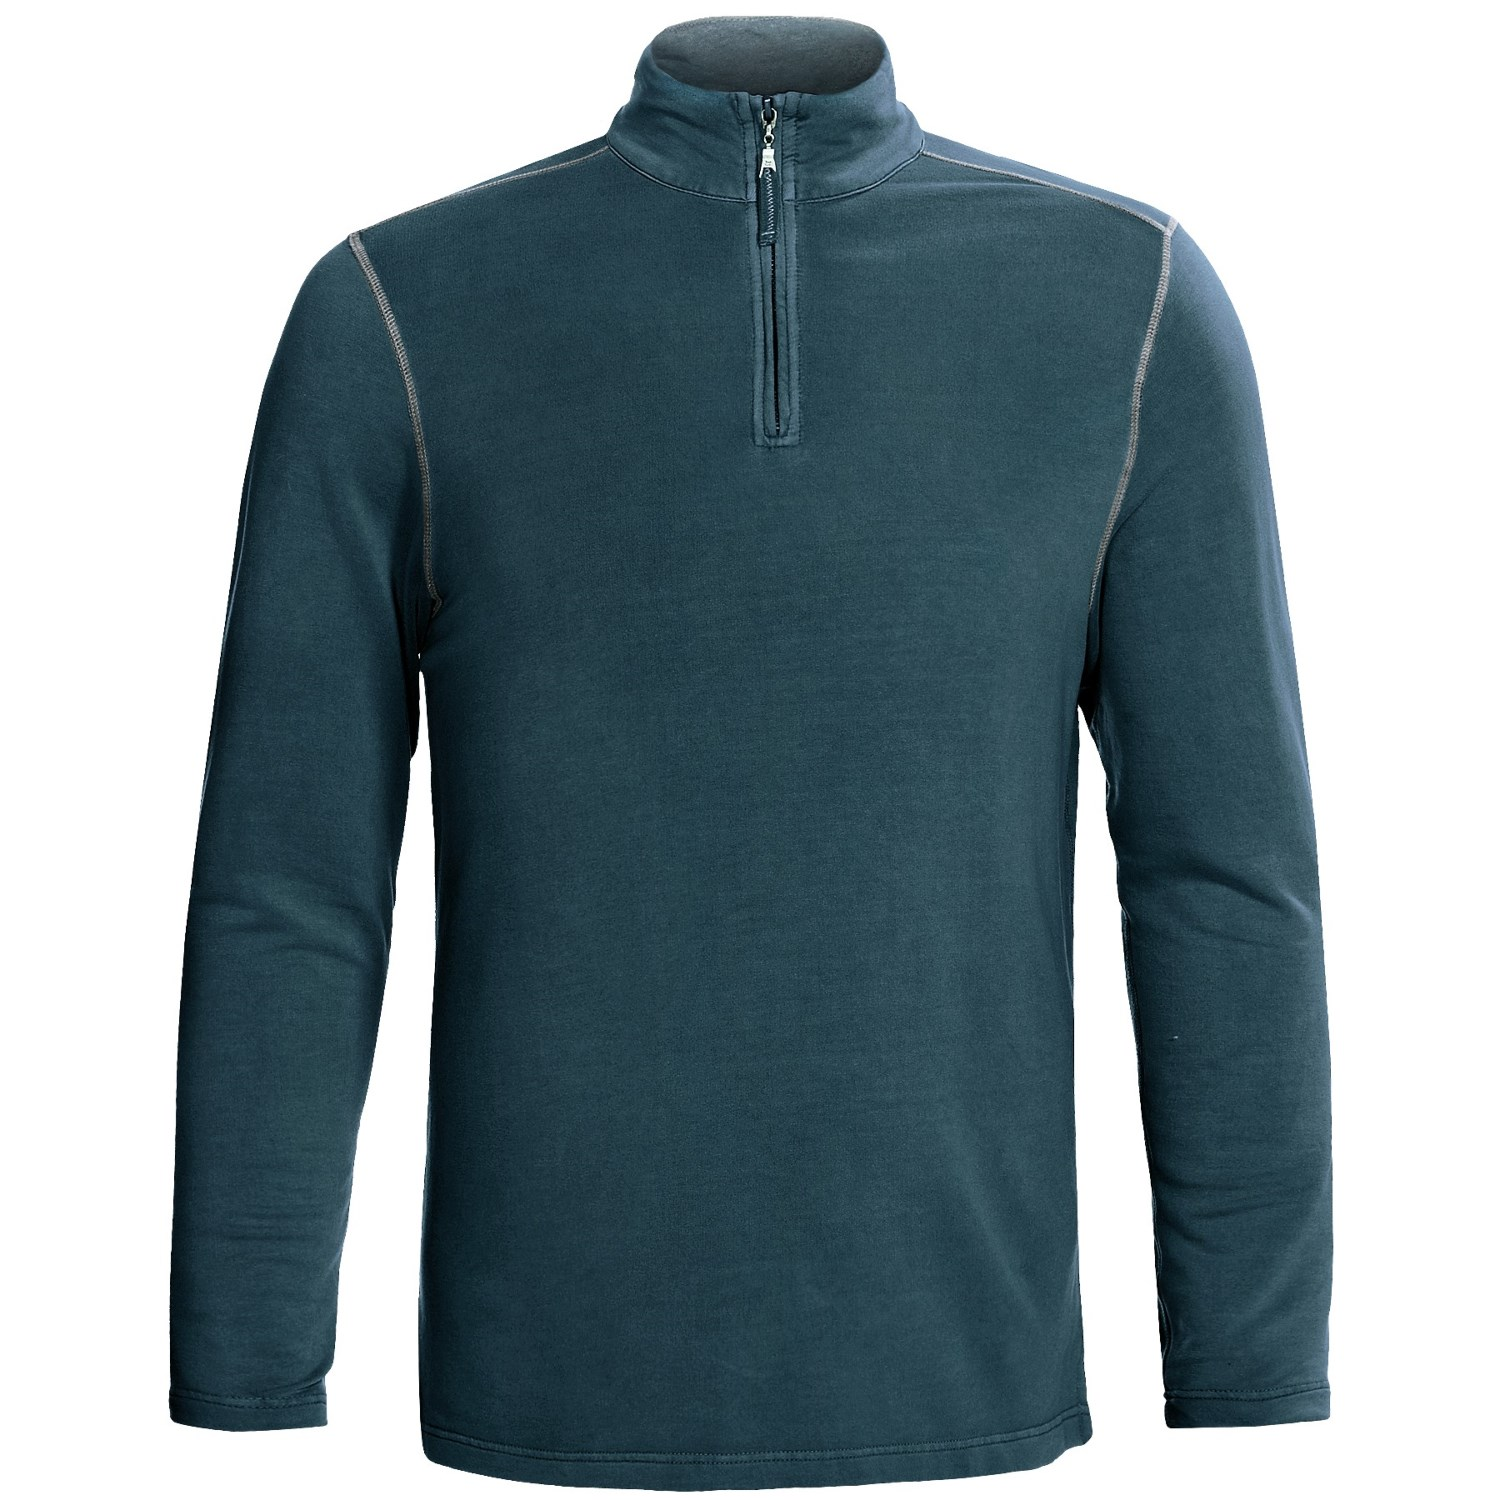 True grit pullover shirt tencel zip neck long sleeve for Pull over shirts for mens